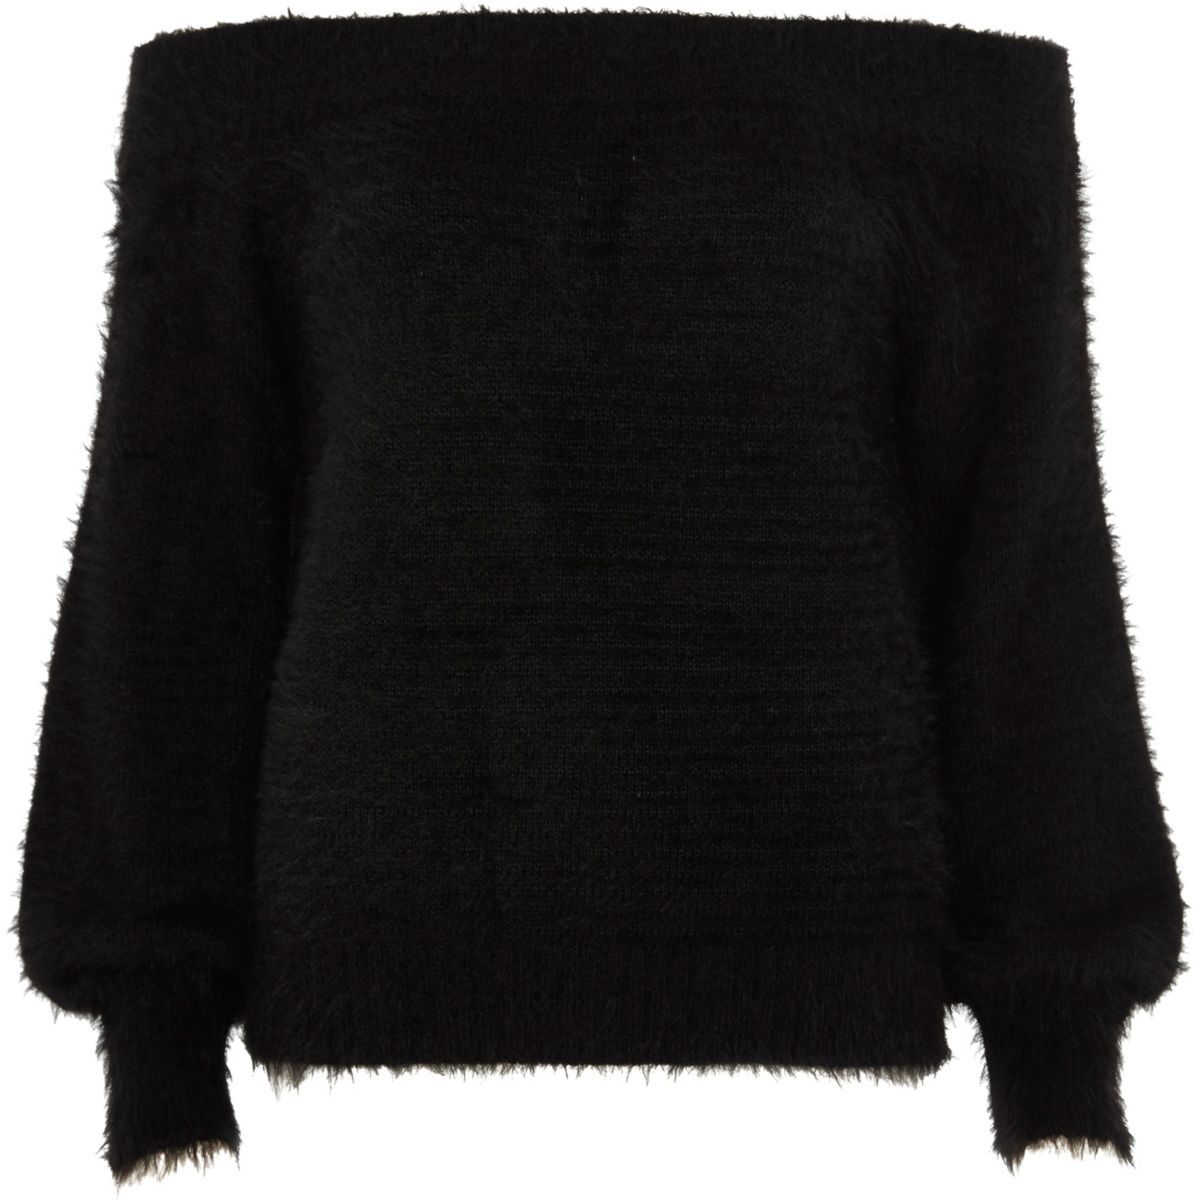 Black bardot fluffy knit jumper - Bardot / Cold Shoulder Tops ...